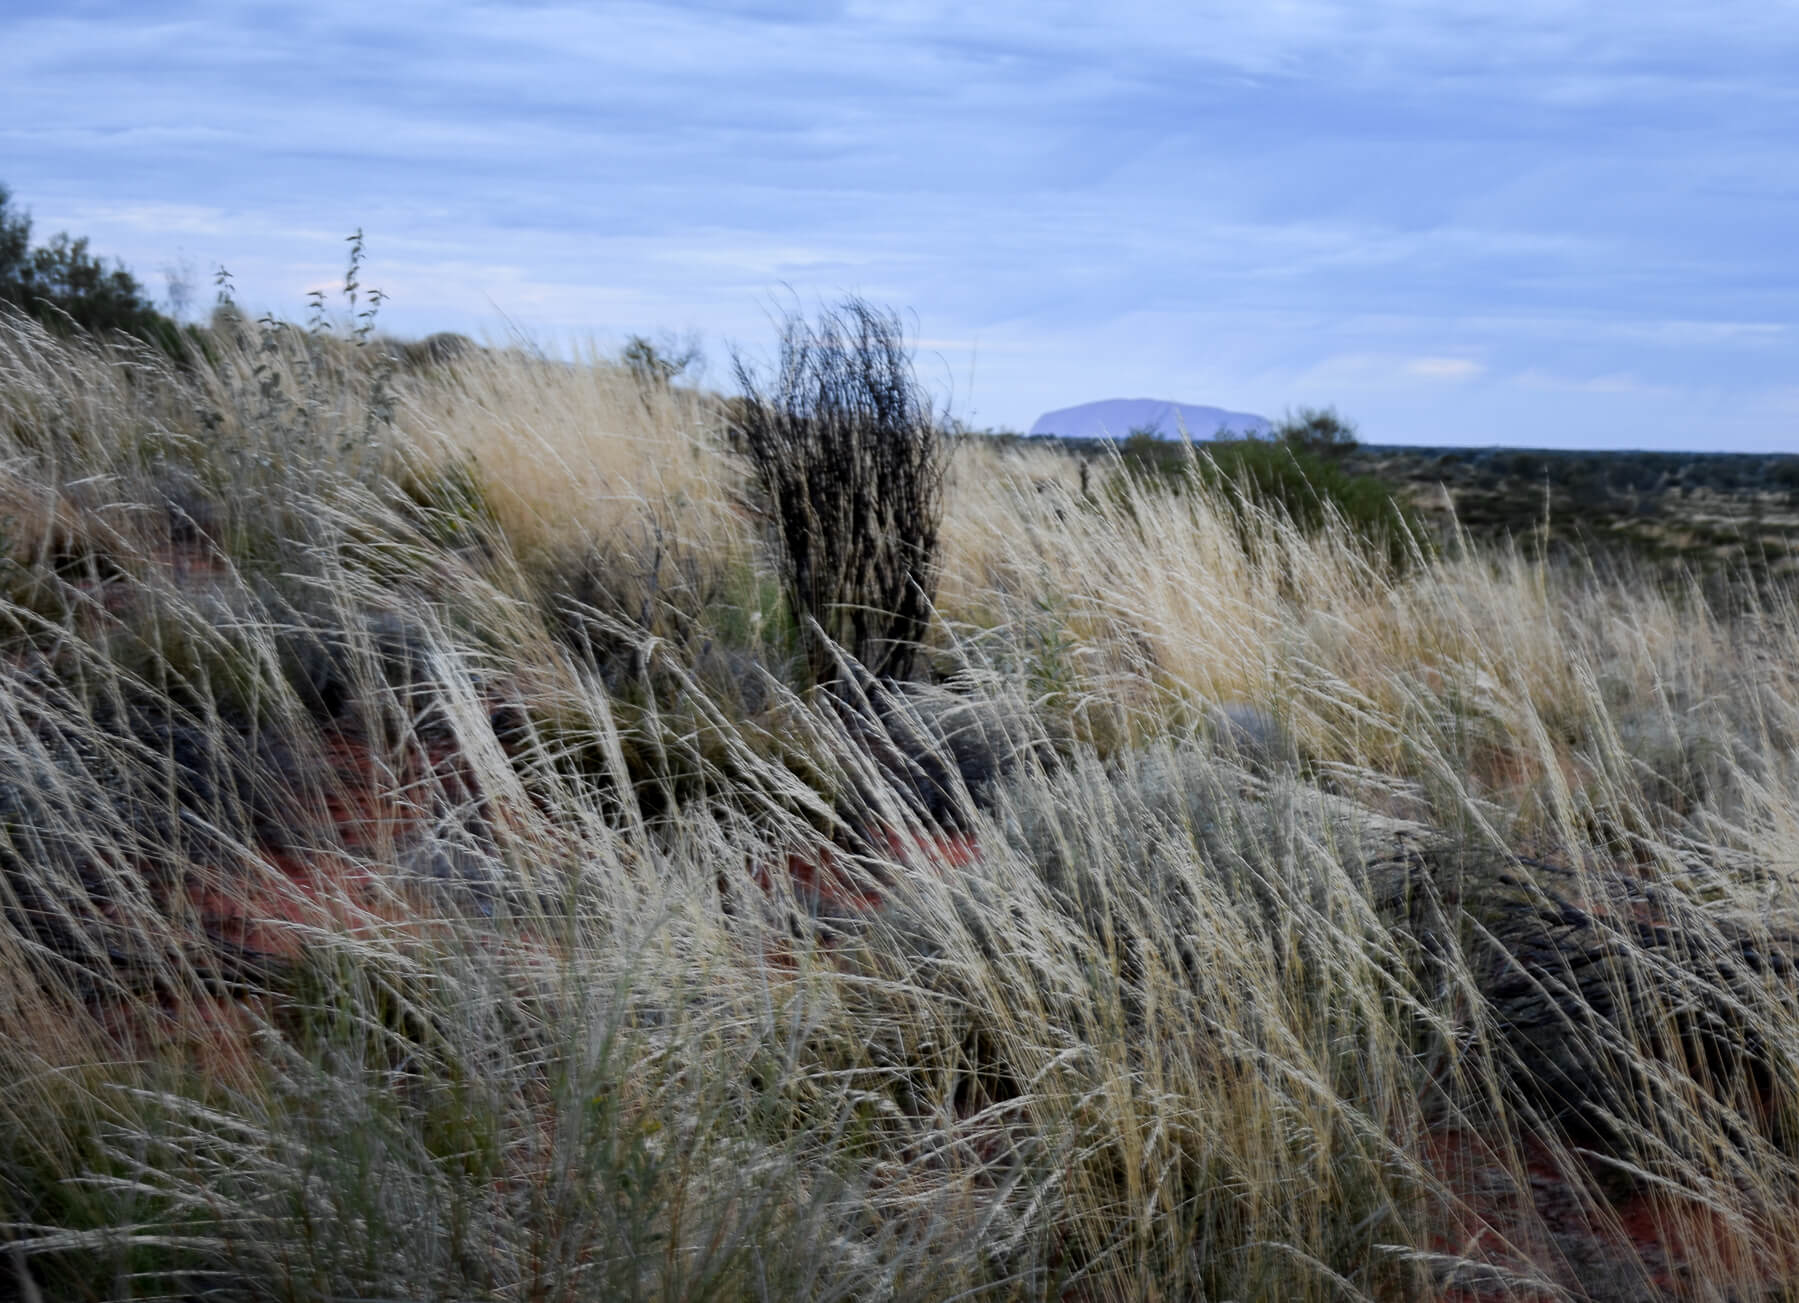 Grassy hill infront of very distant Ayers Rock